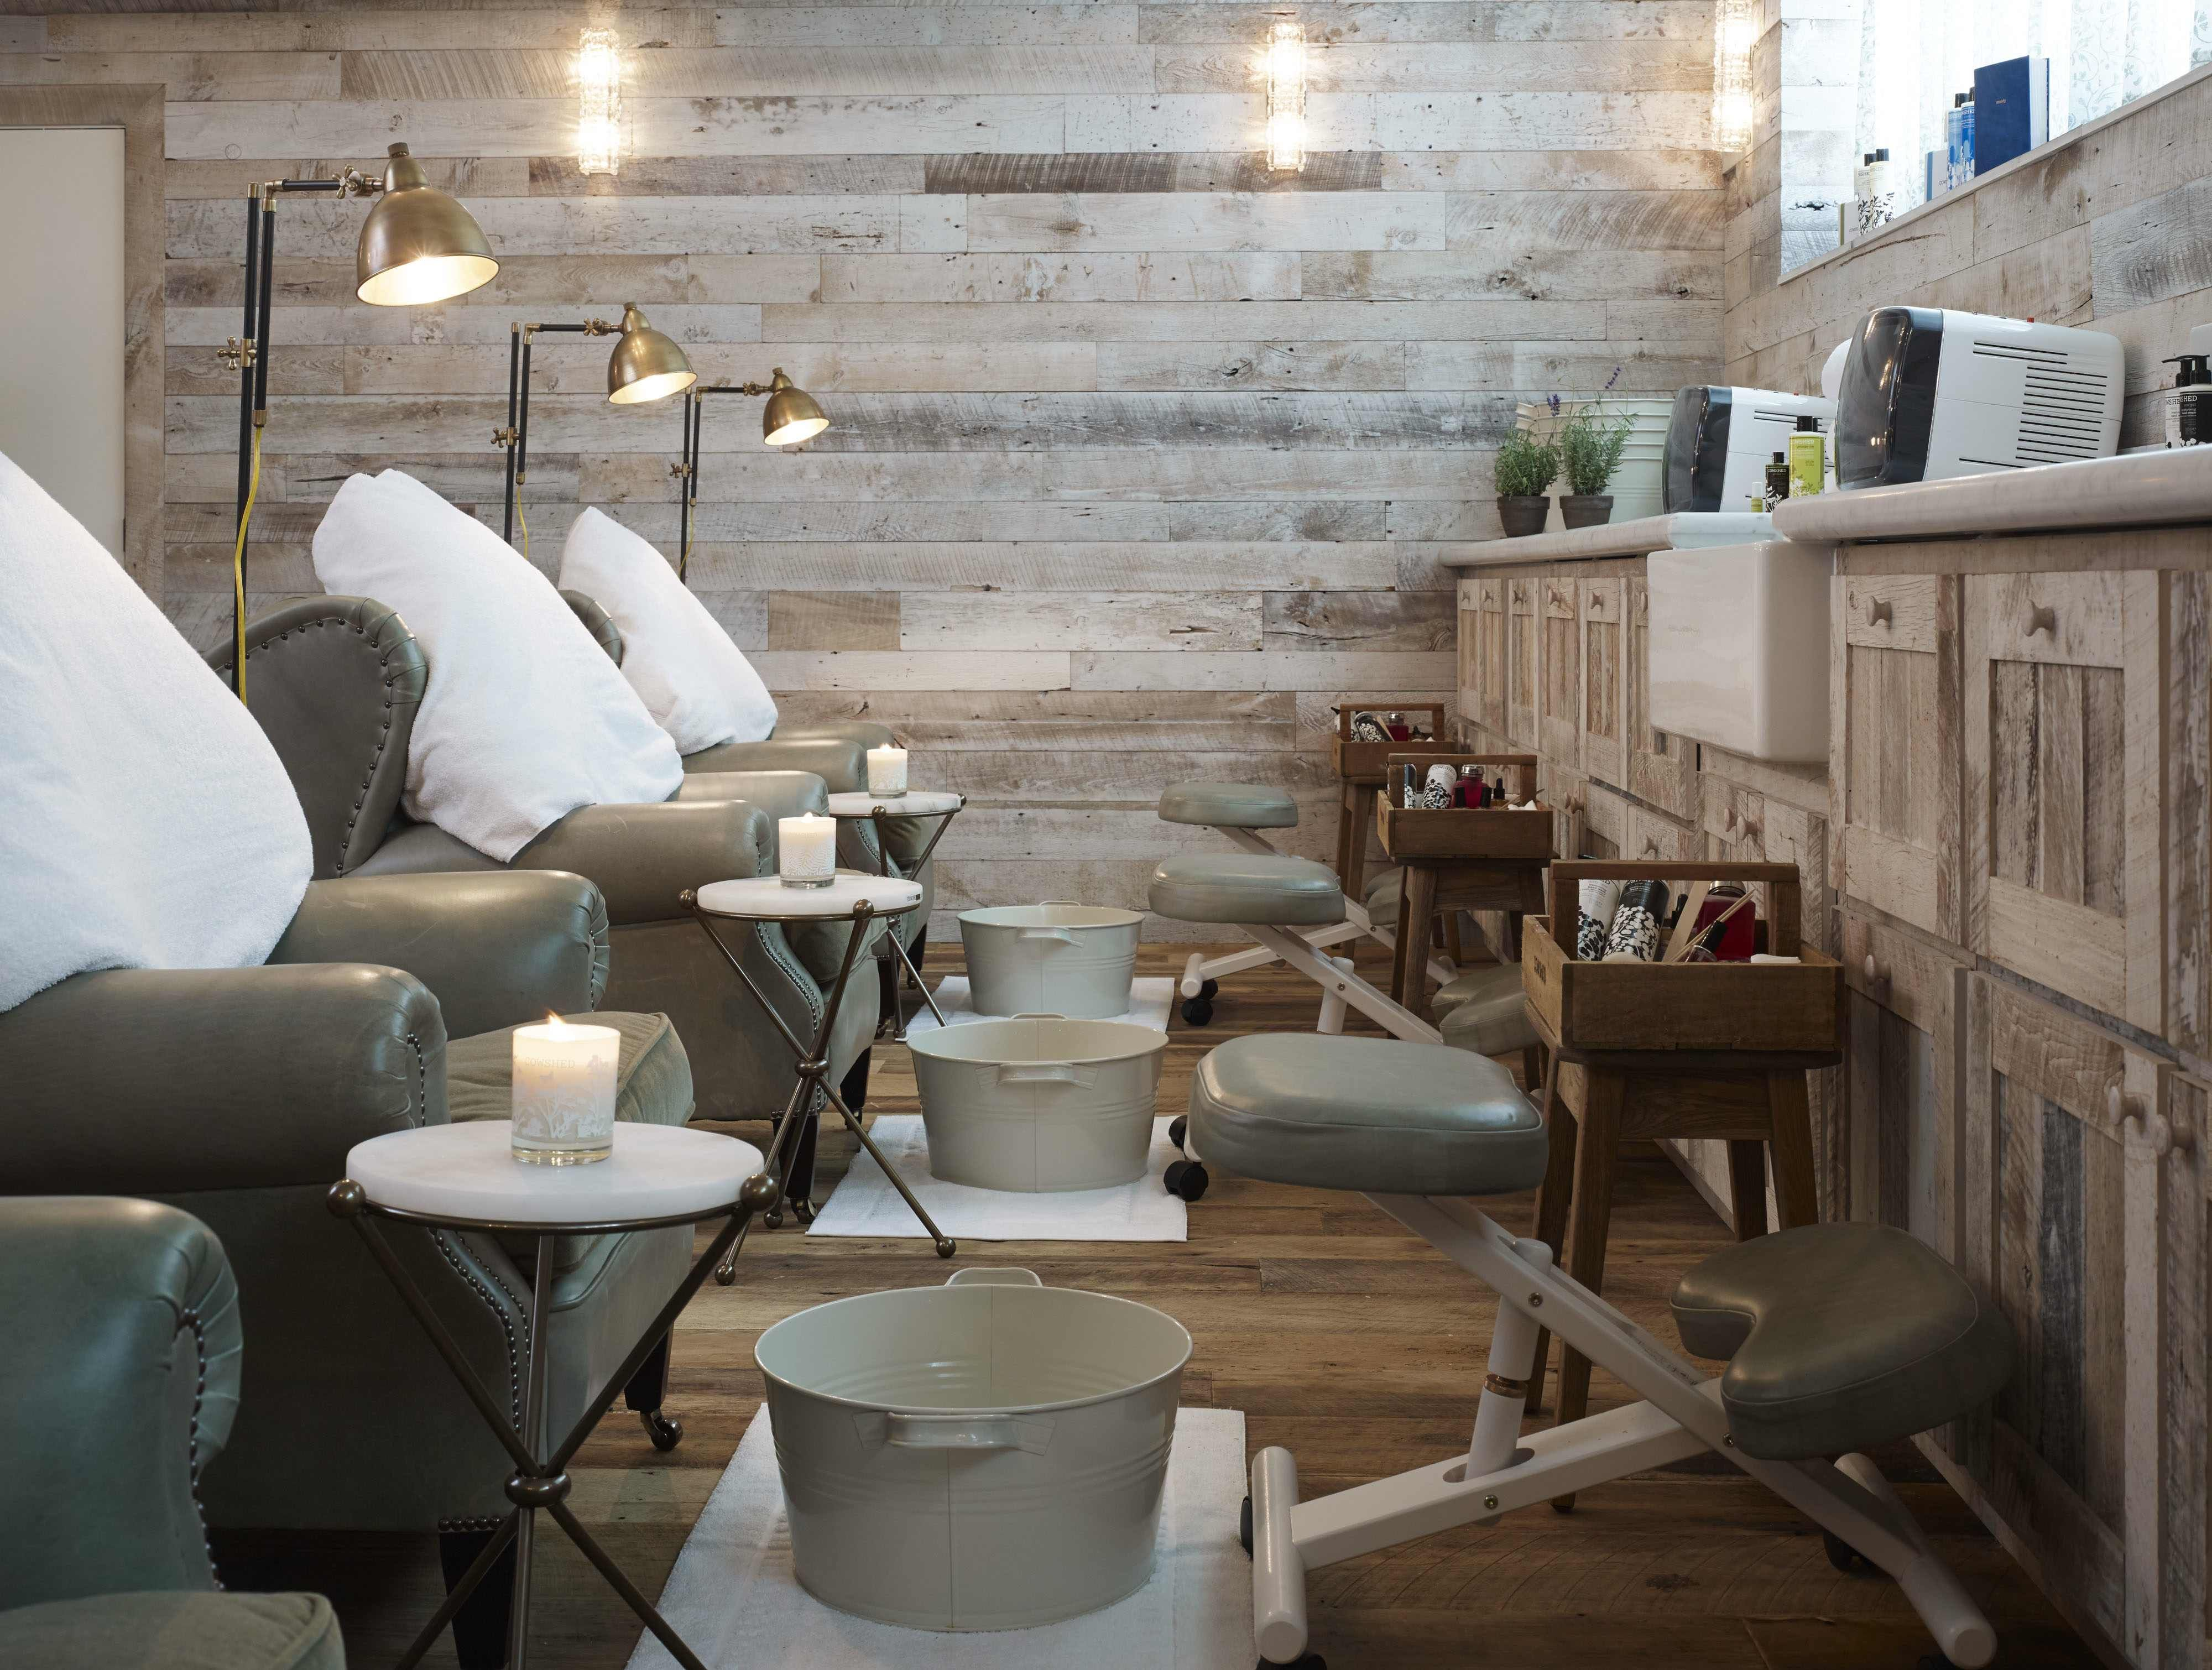 Cowshed spa in chicago has a cozy chic rustic interior for Soho interior design ideas